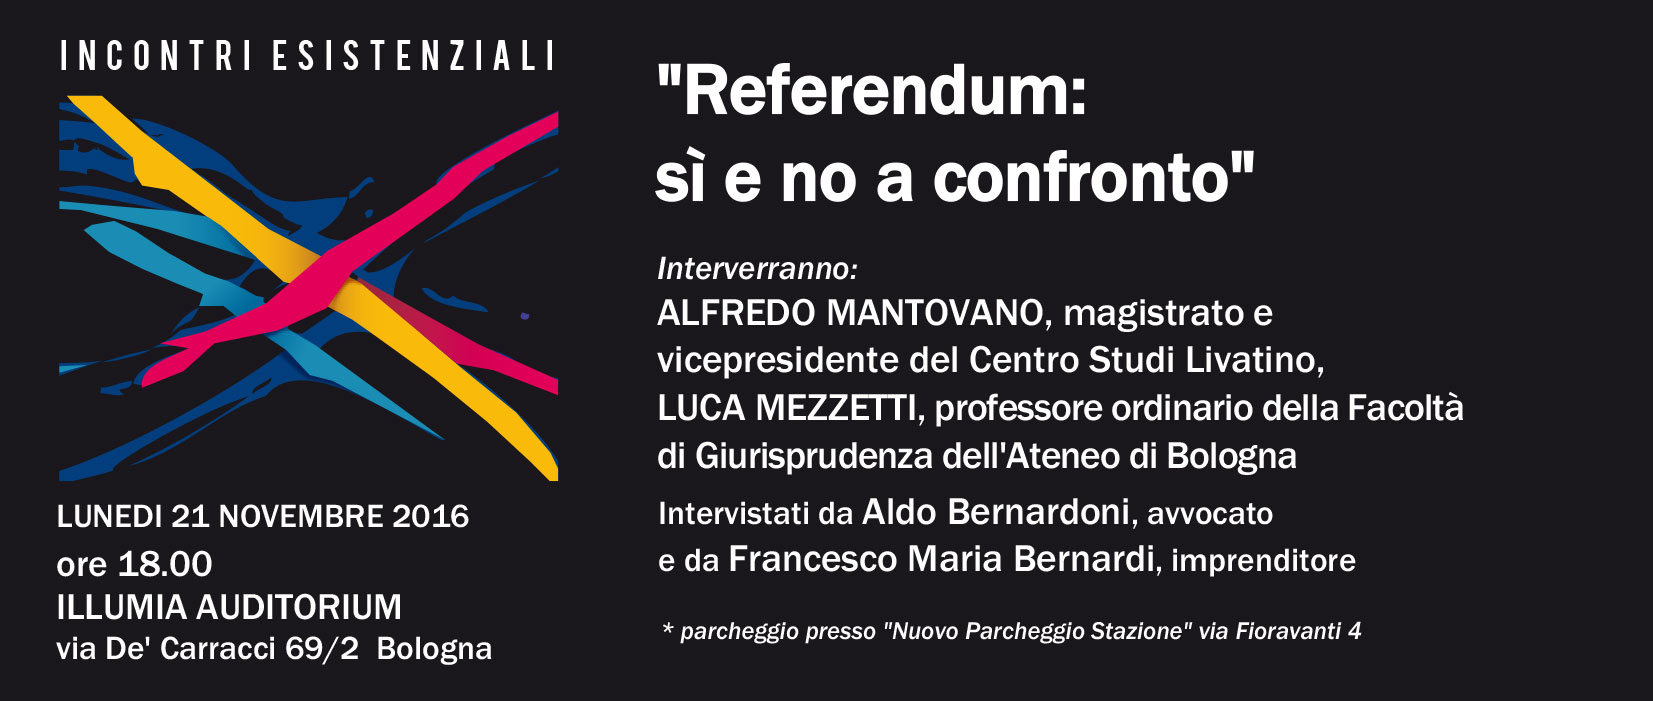 Referendum Si E No A Confronto